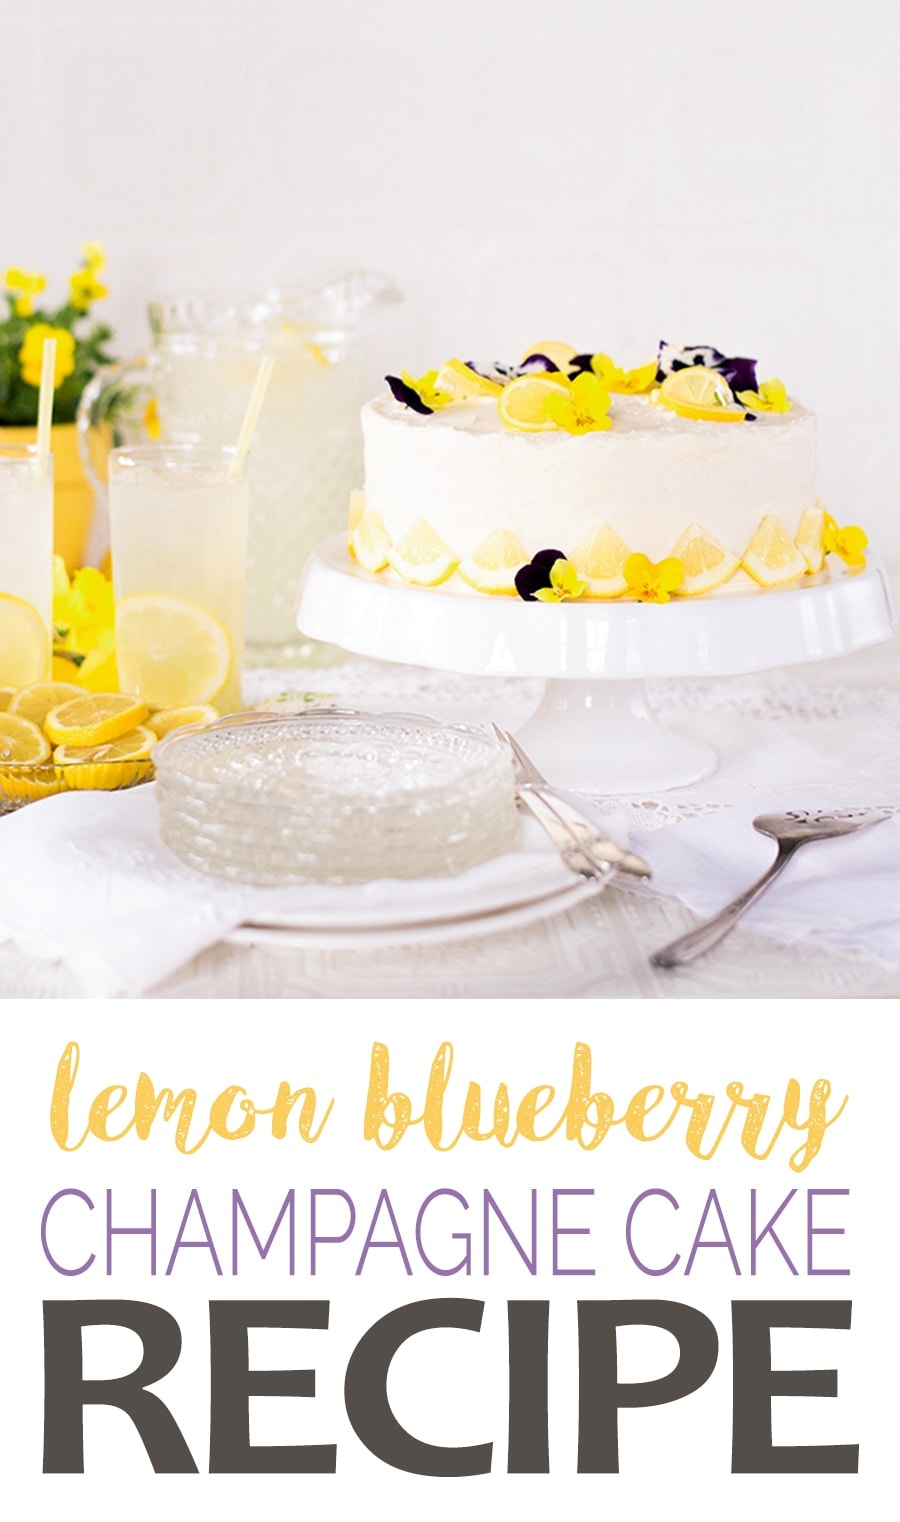 Lemon Blueberry Champagne Cake Pin - Champagne Lemon Blueberry Cake with Cream Cheese Frosting